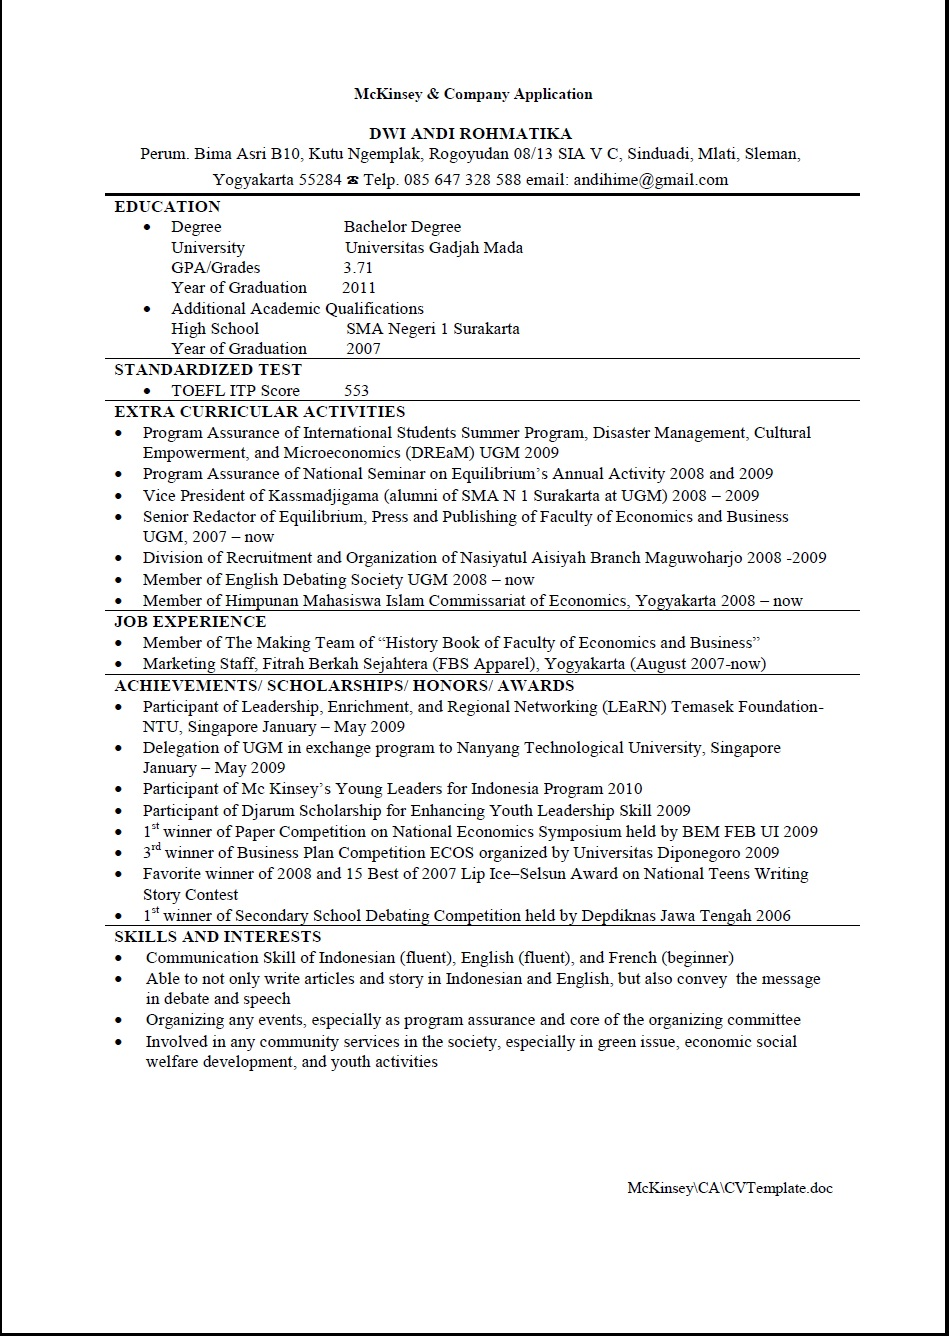 resume mckinsey cv example resume cv example leadership essay mckinsey sample essays